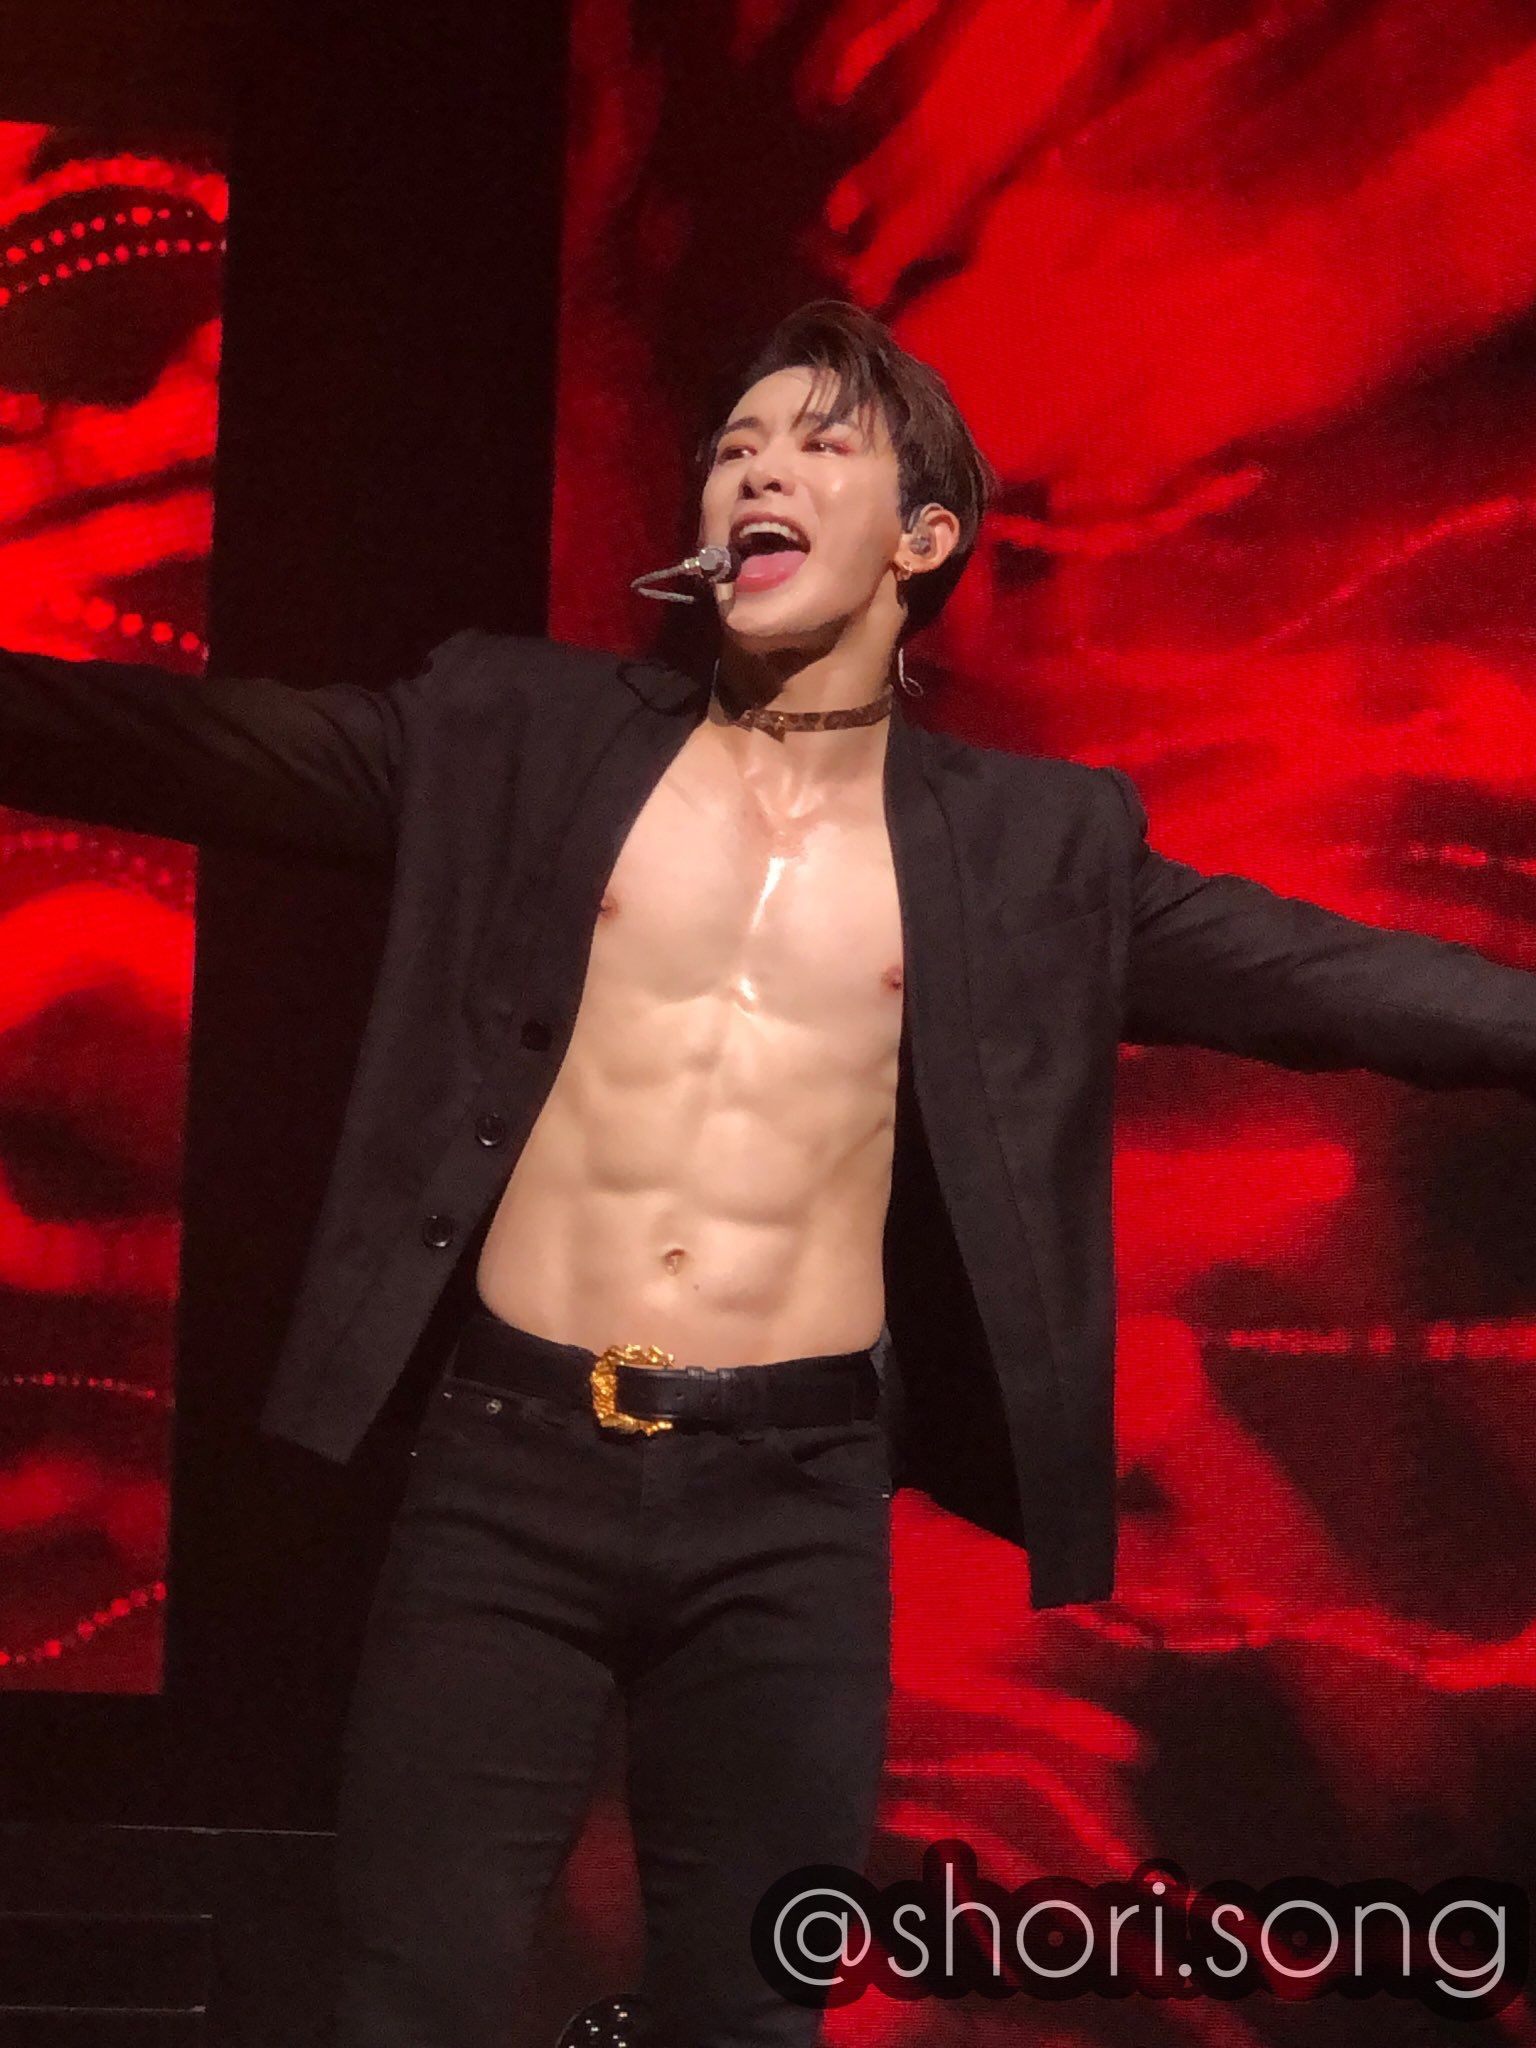 Pin By ±½áµƒË¡áµ‰â¿ On Black Haired Wonho Monsta X Wonho Wonho Abs Monsta X